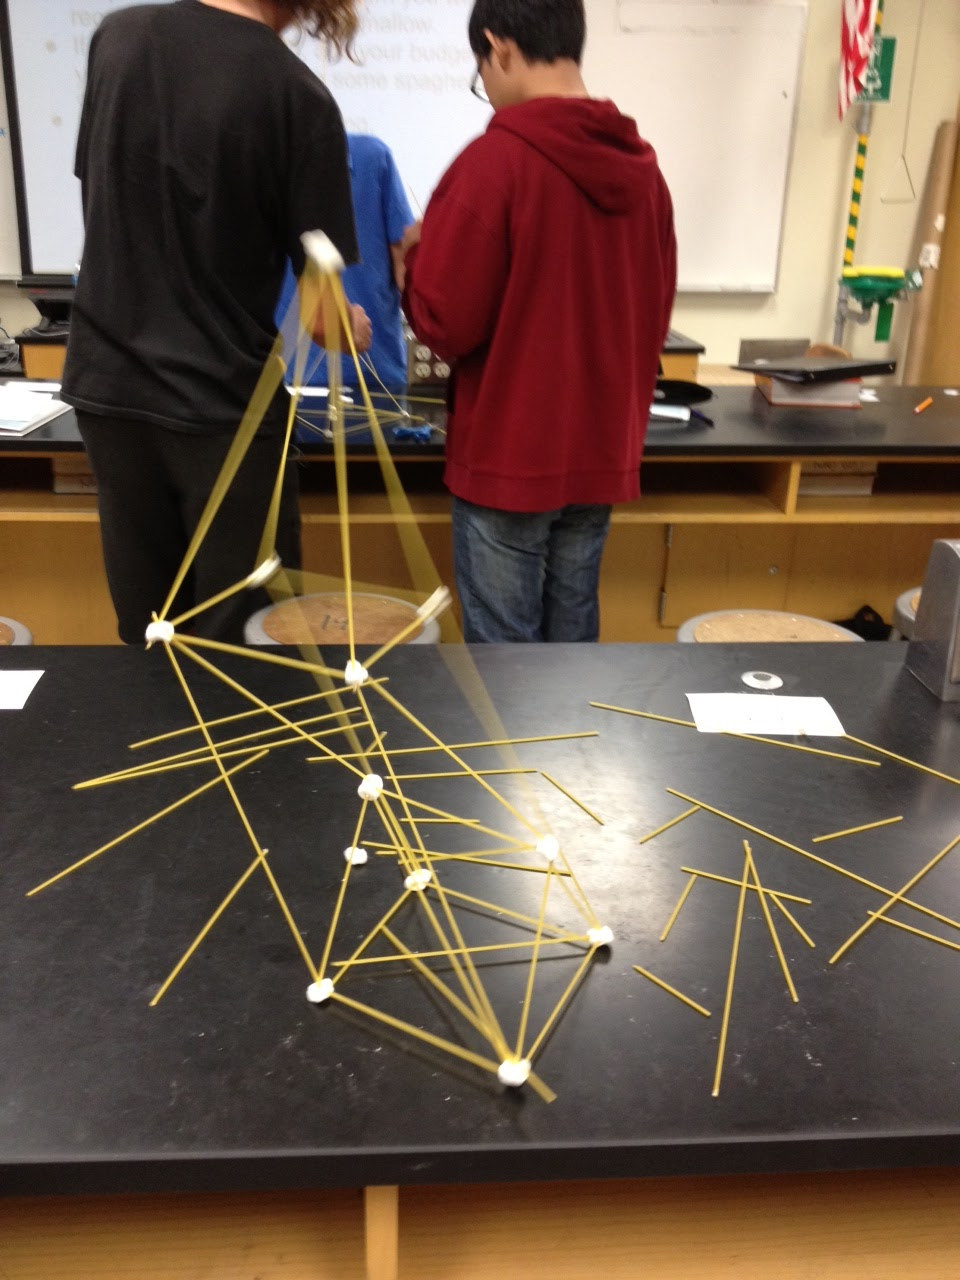 ap physics spaghetti tower. Black Bedroom Furniture Sets. Home Design Ideas